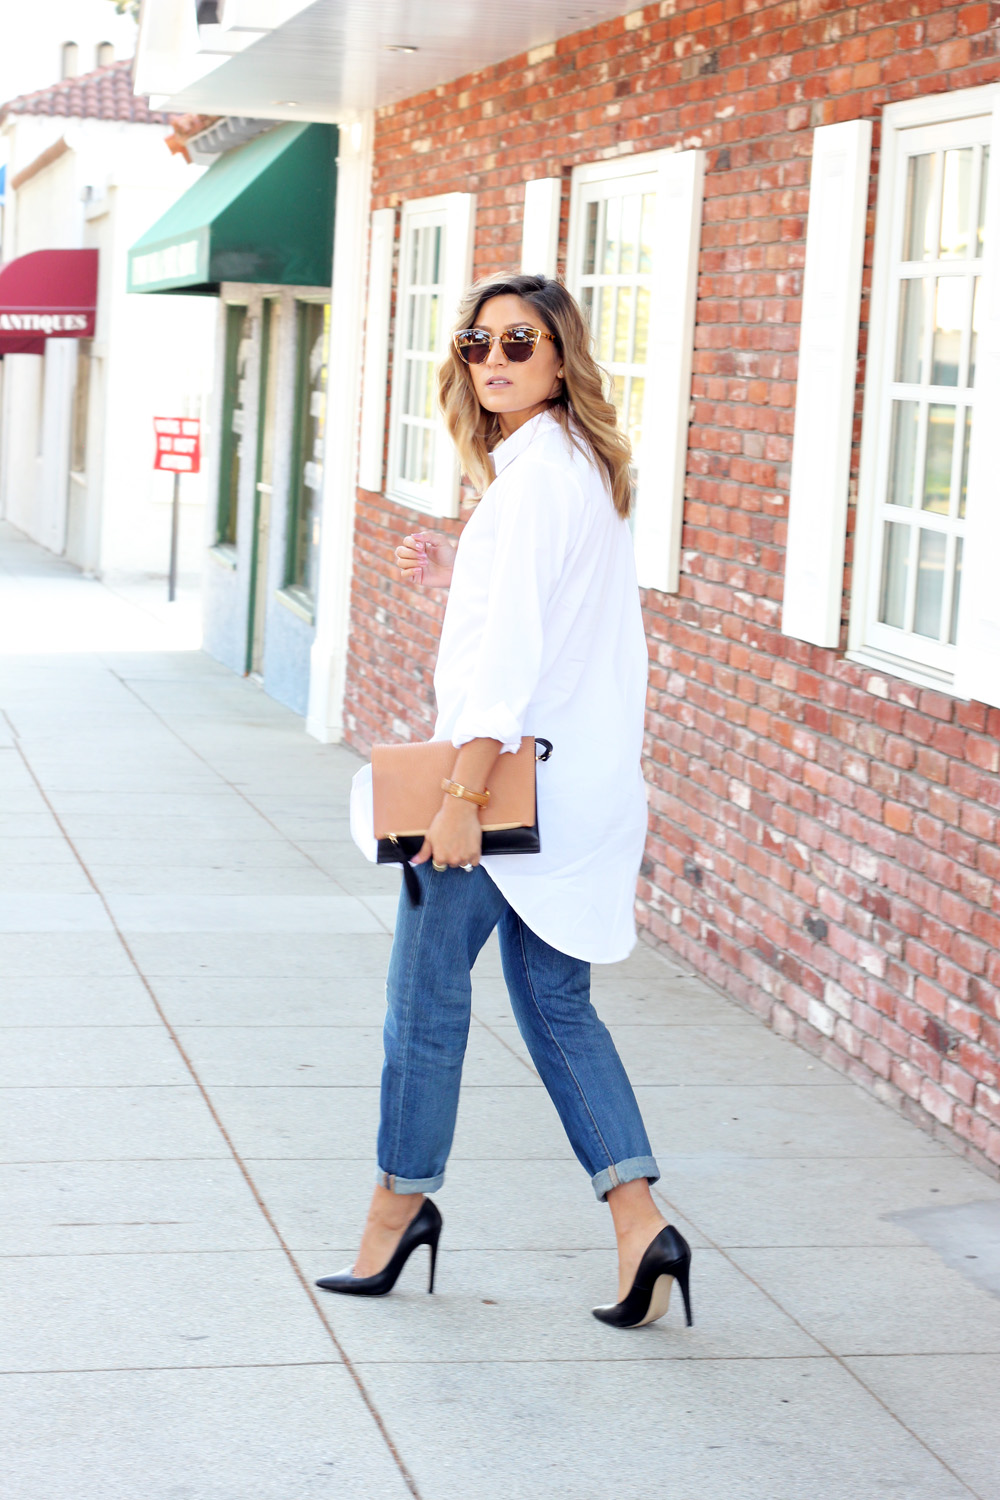 forever 21, f21, button down shirt, shirt, boyfriend jeans, levis, heels, classic, basic, ootd, inspiration, street style, la blogger, bloggers, latina blogger, mexican blogger, aldo, boots, fall, refinery 29, who what wear, stylelist, outfit